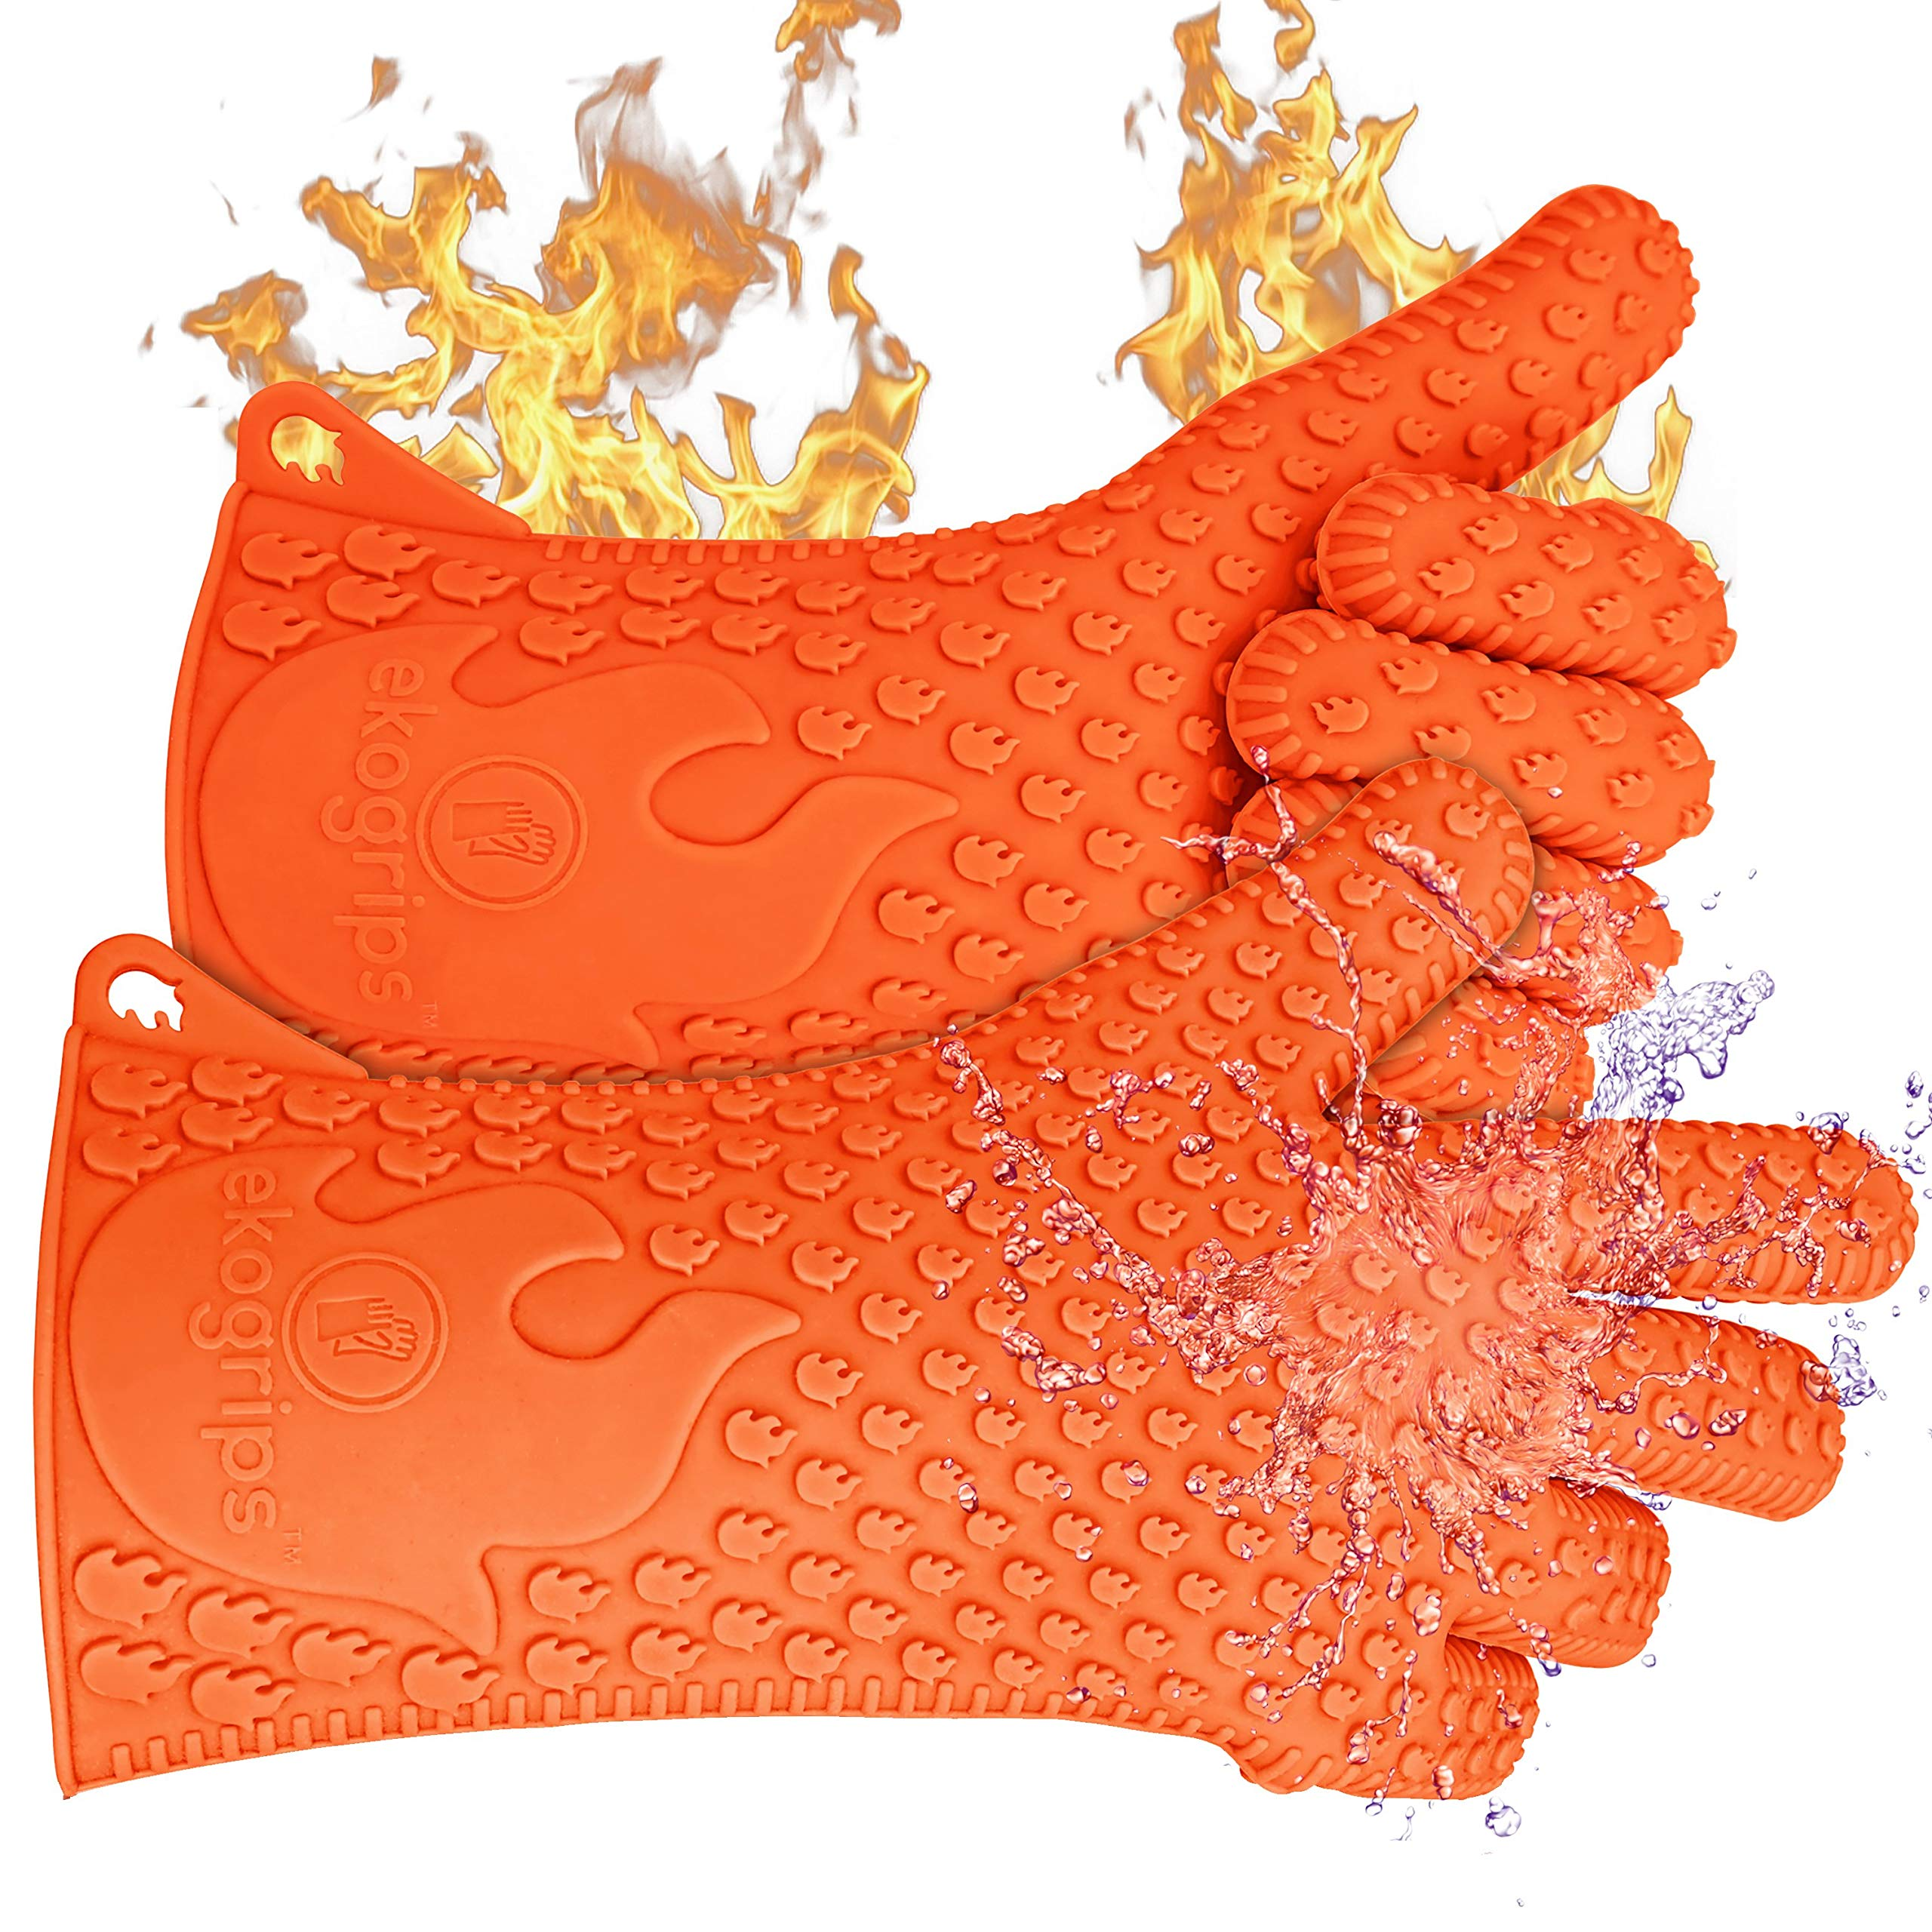 Jolly Green Products Ekogrips Premium BBQ Oven Gloves   Best Versatile Heat Resistant Grill Gloves   Insulated Silicone Oven Mitts for Grilling   Waterproof   Forearm Protection   Orange, L/XL